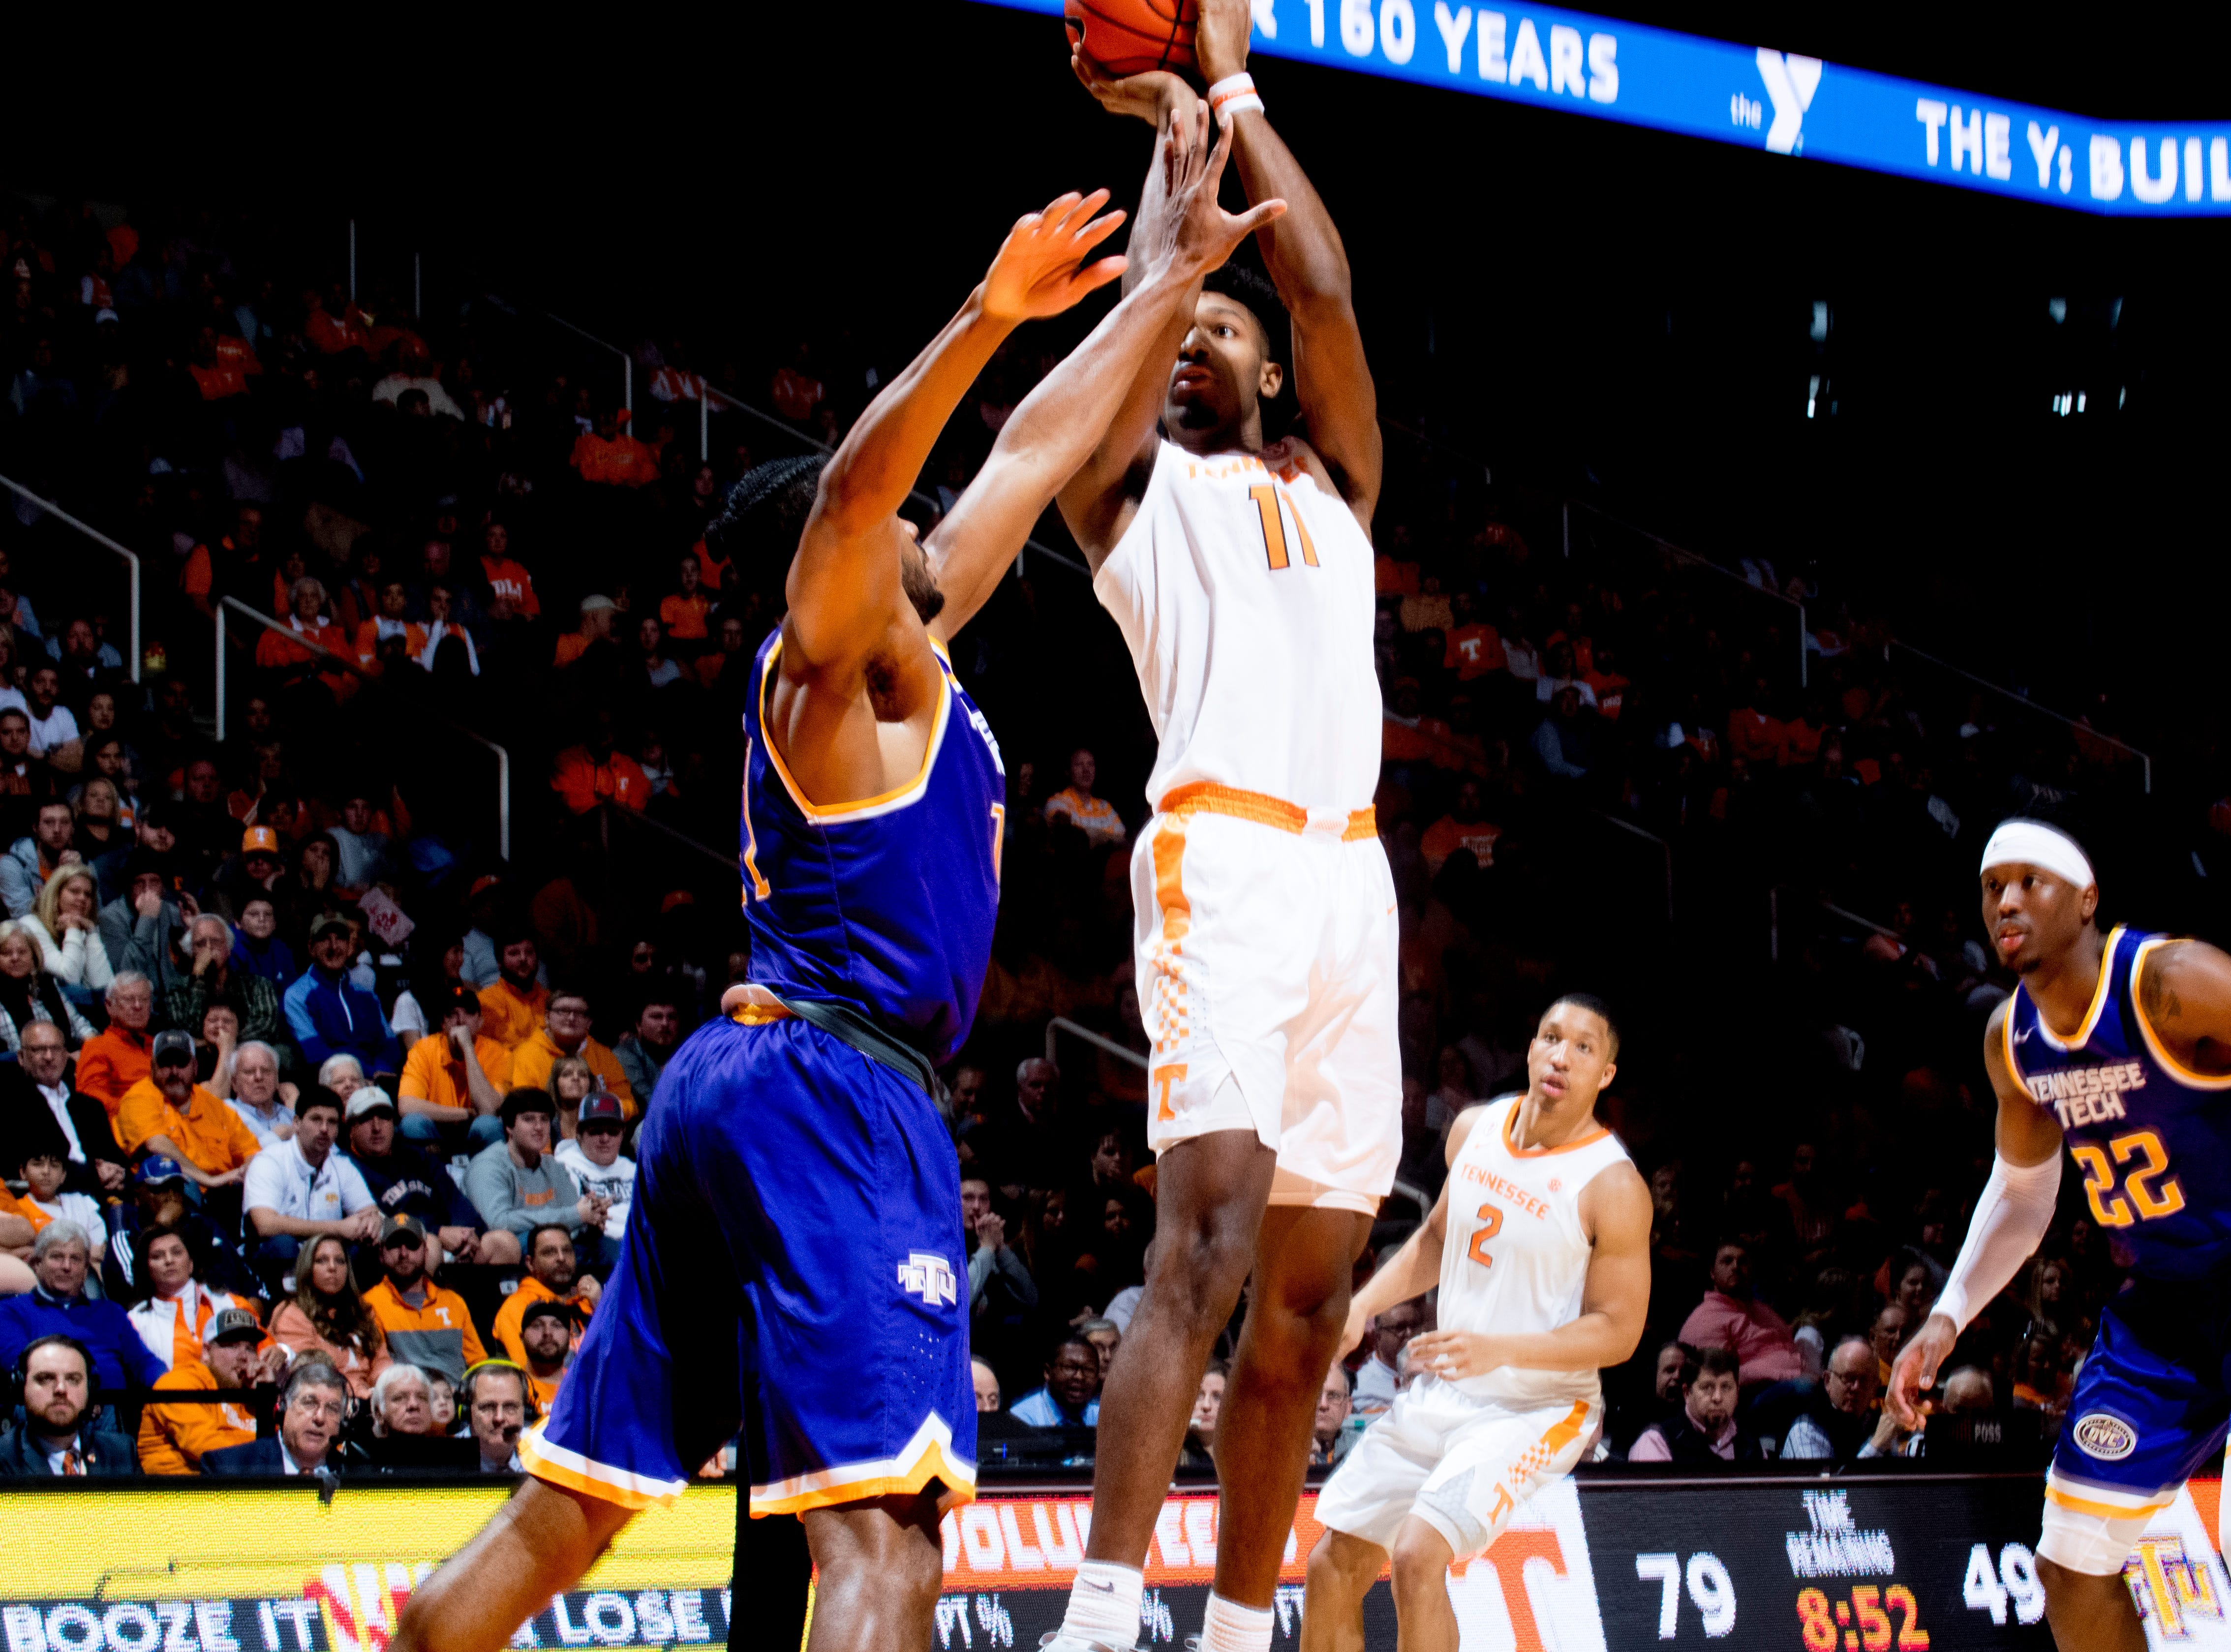 Tennessee forward Kyle Alexander (11) shoots the ball during a game between Tennessee and Tennessee Tech at Thompson-Boling Arena in Knoxville, Tennessee on Saturday, December 29, 2018.